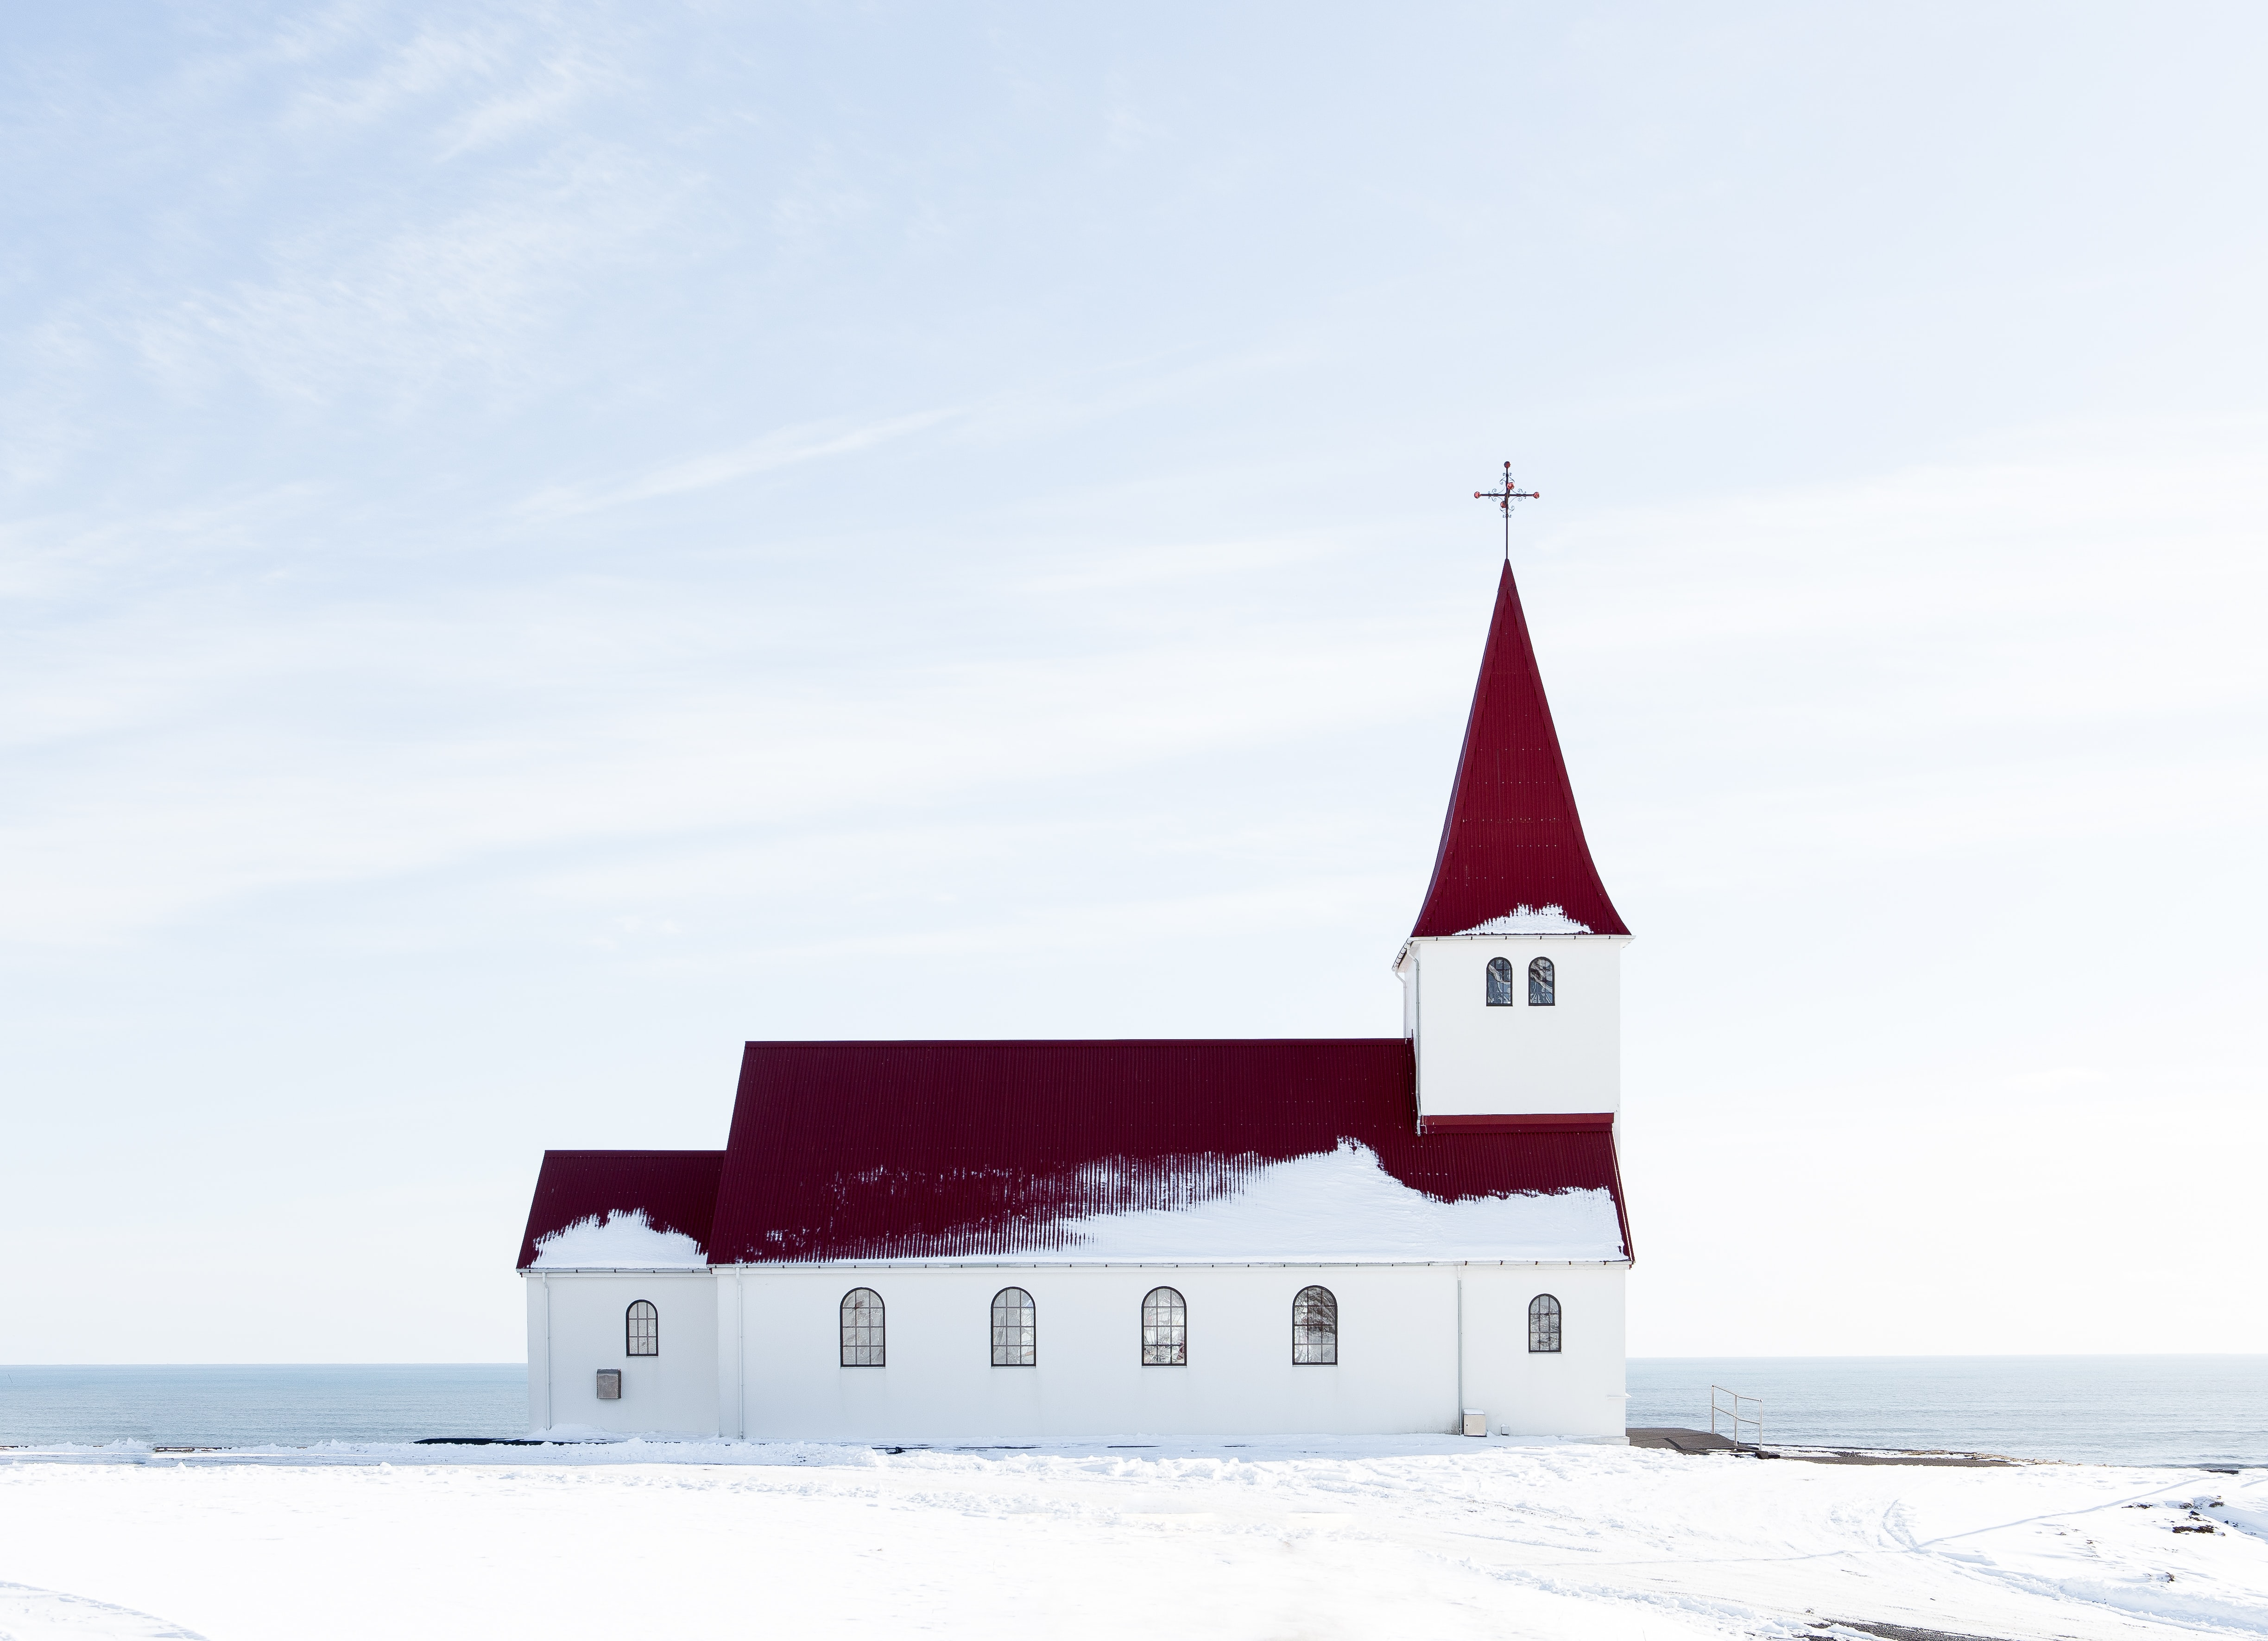 A white church with dark red roof in a stark, snowy setting